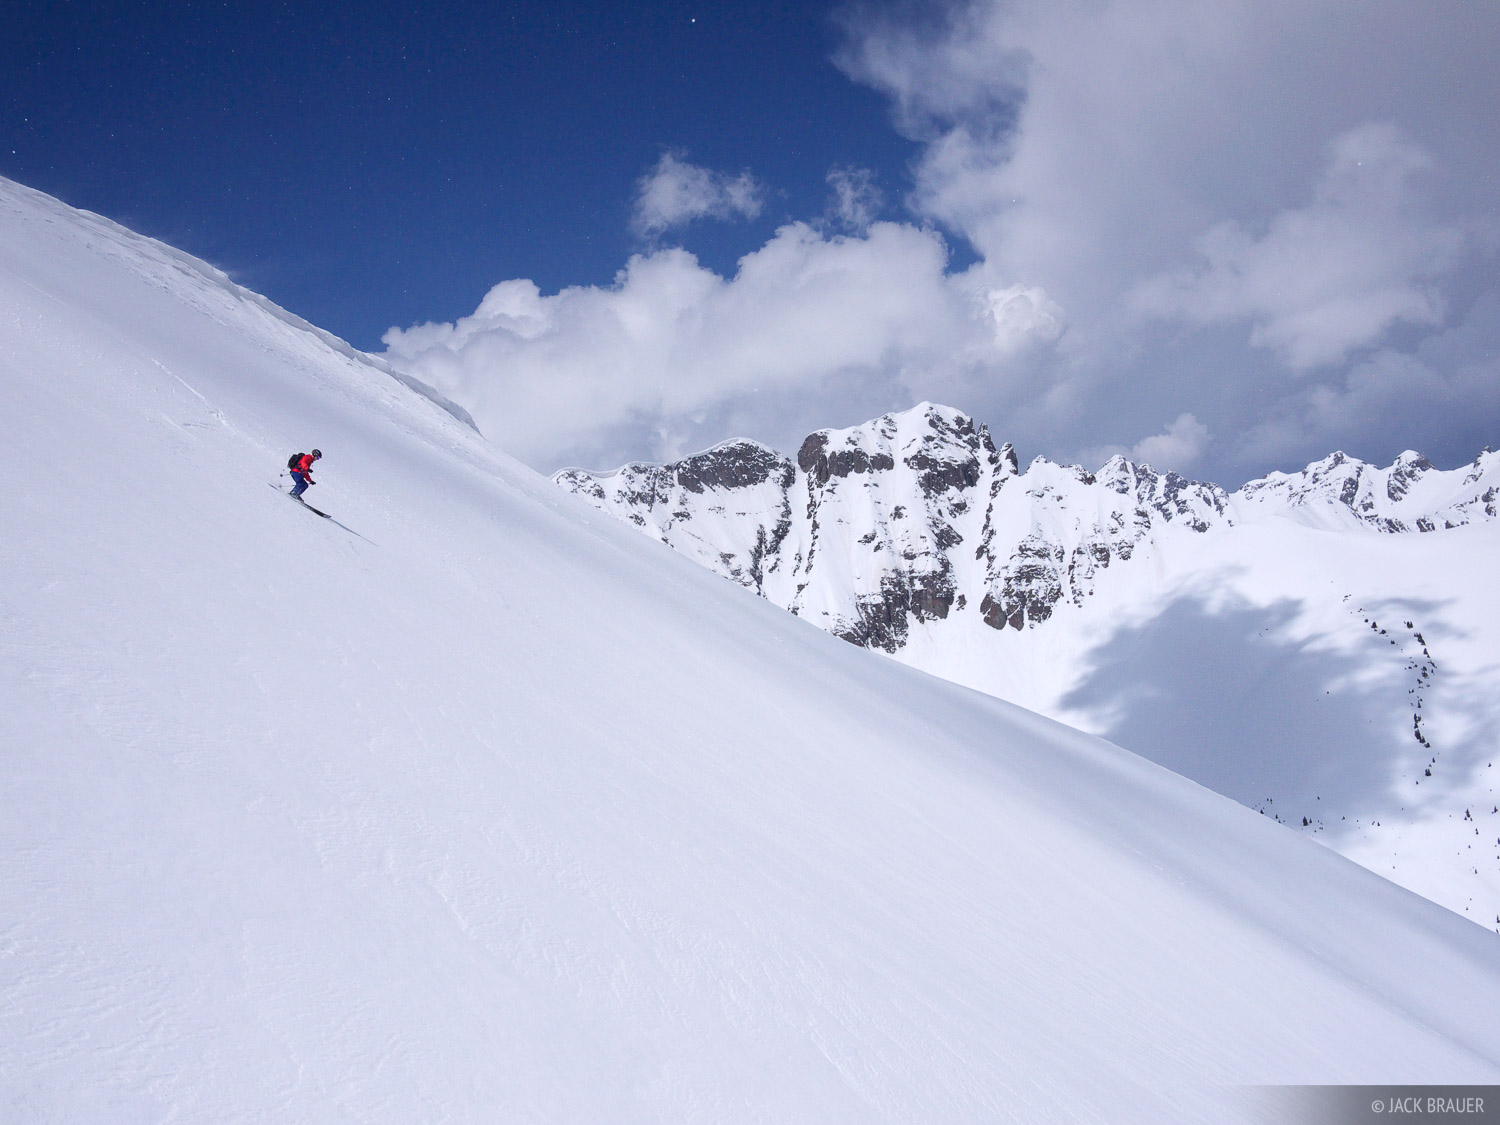 Skiing a large face, smooth as a pool table, in the San Juan Mountains, May.  Skier: Chris Cover.